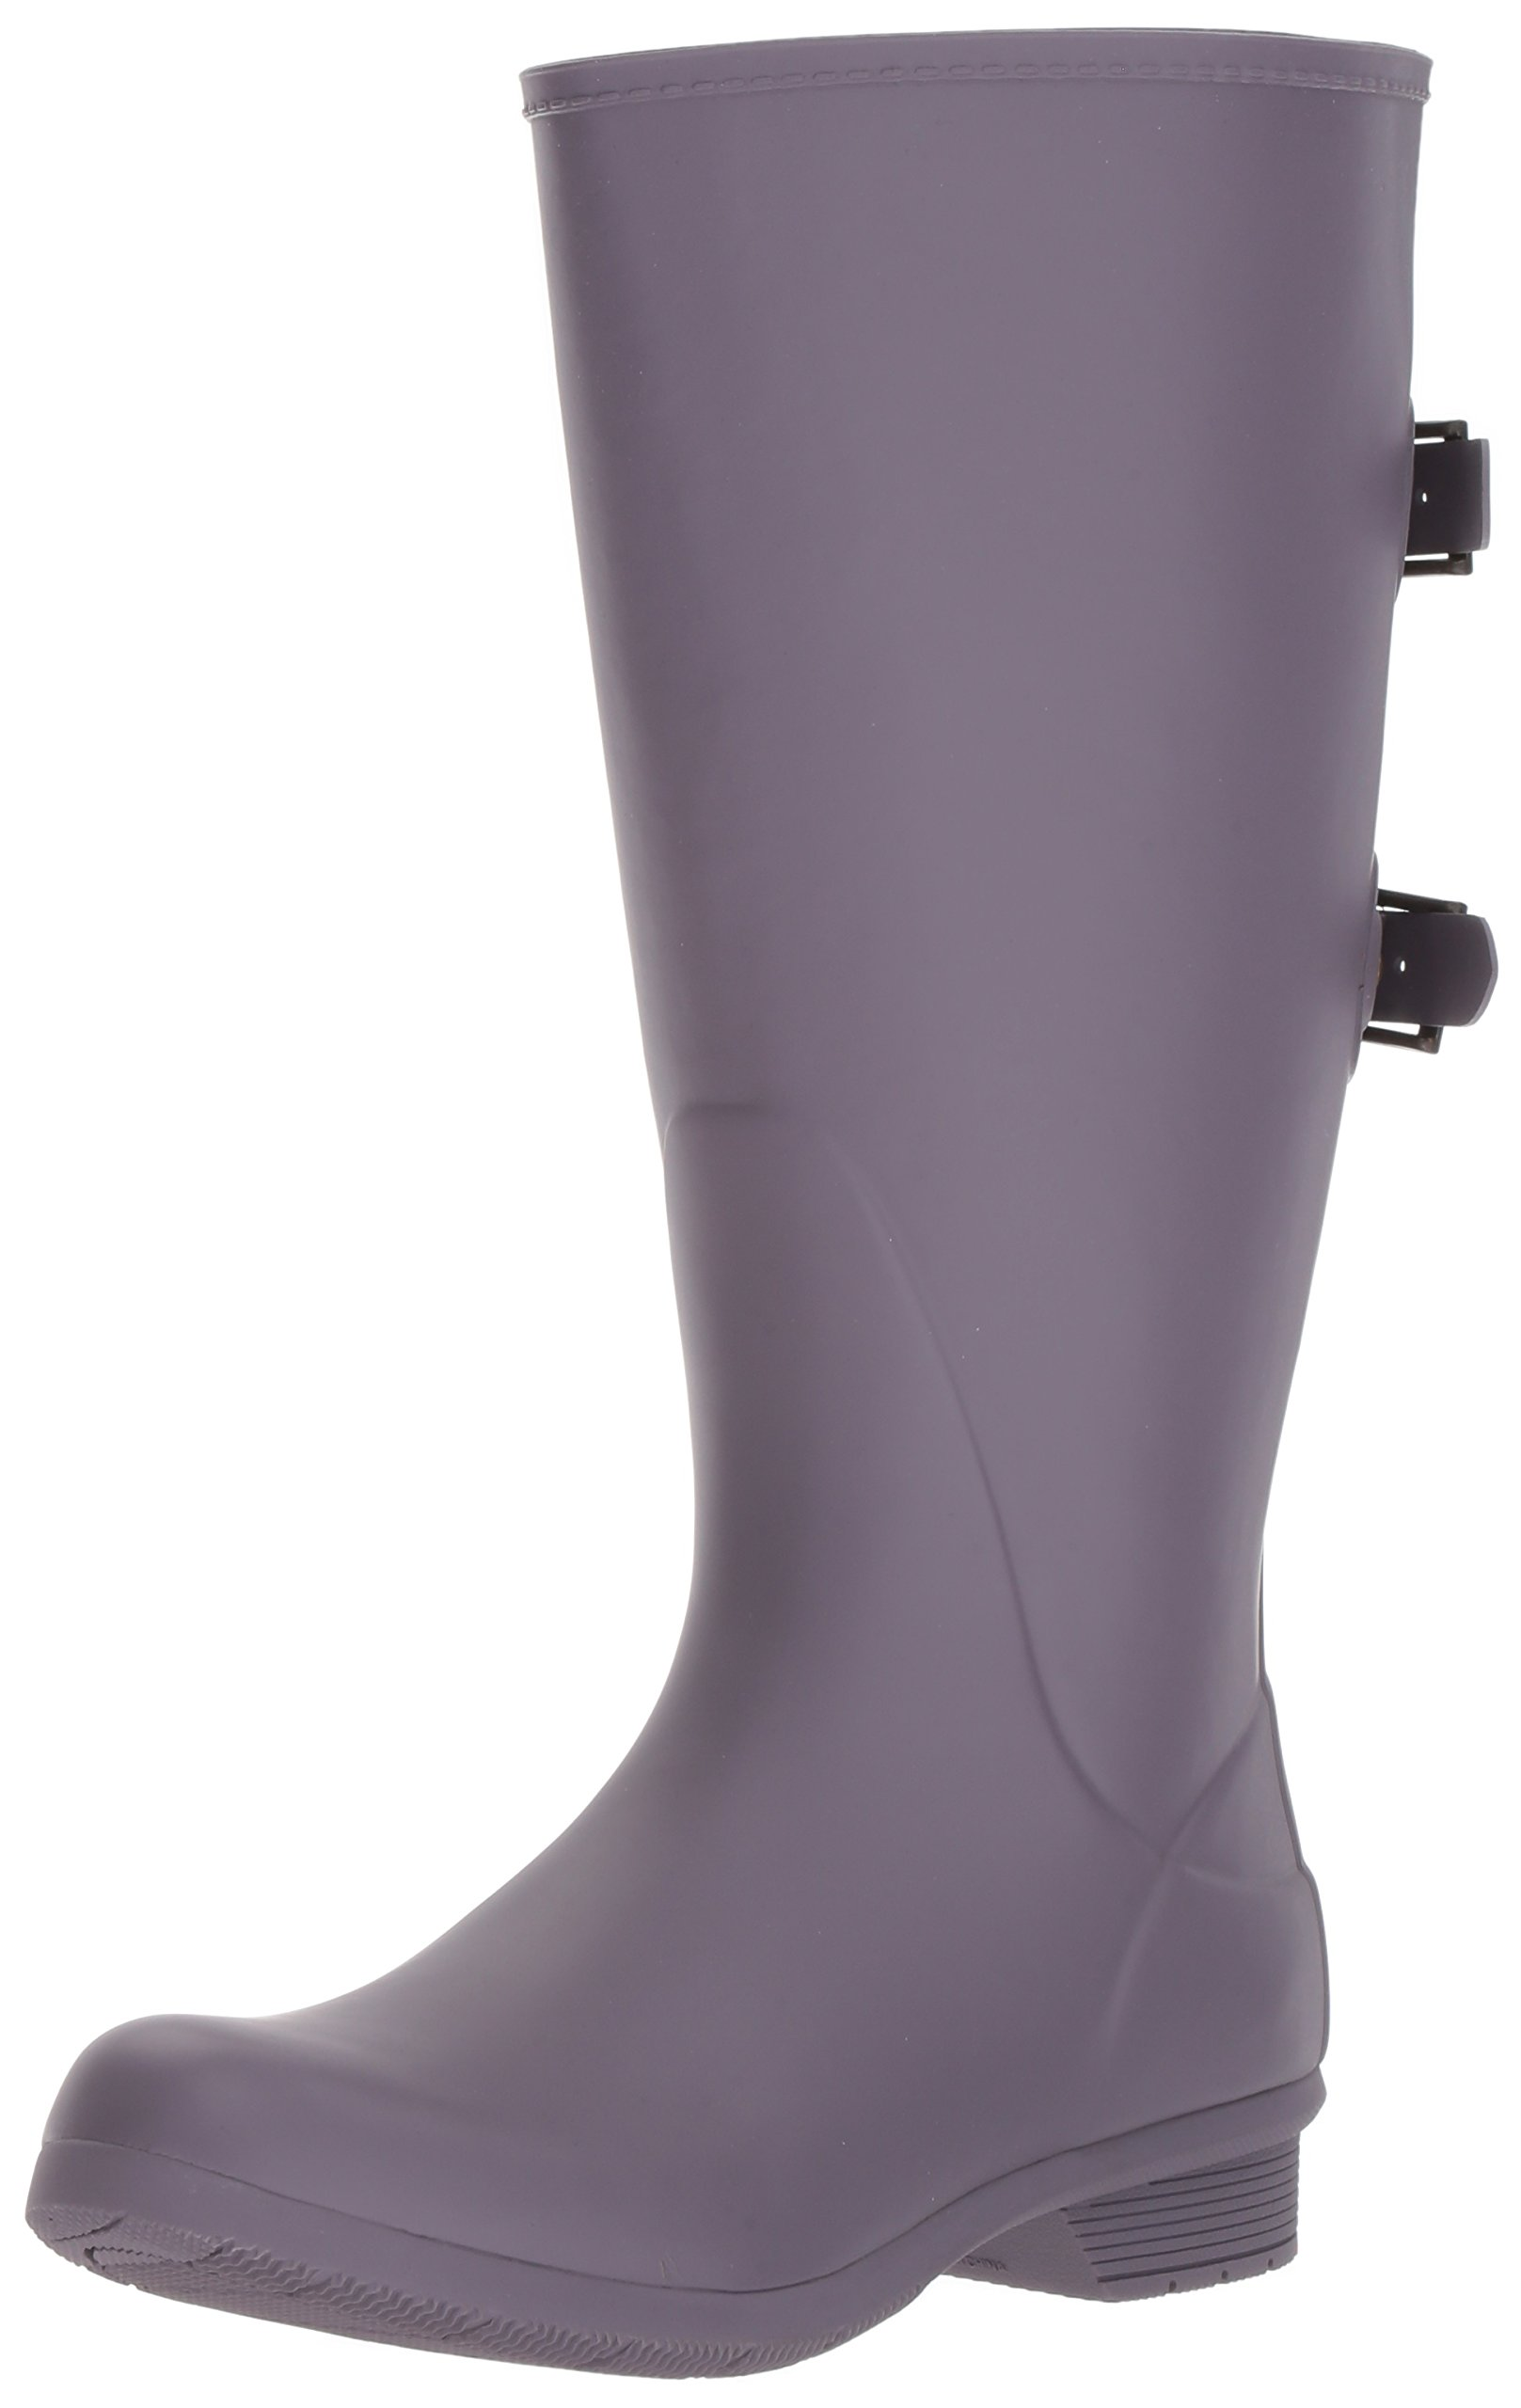 Chooka Women's Wide Calf Memory Foam Rain Boot, Mulberry, 11 M US